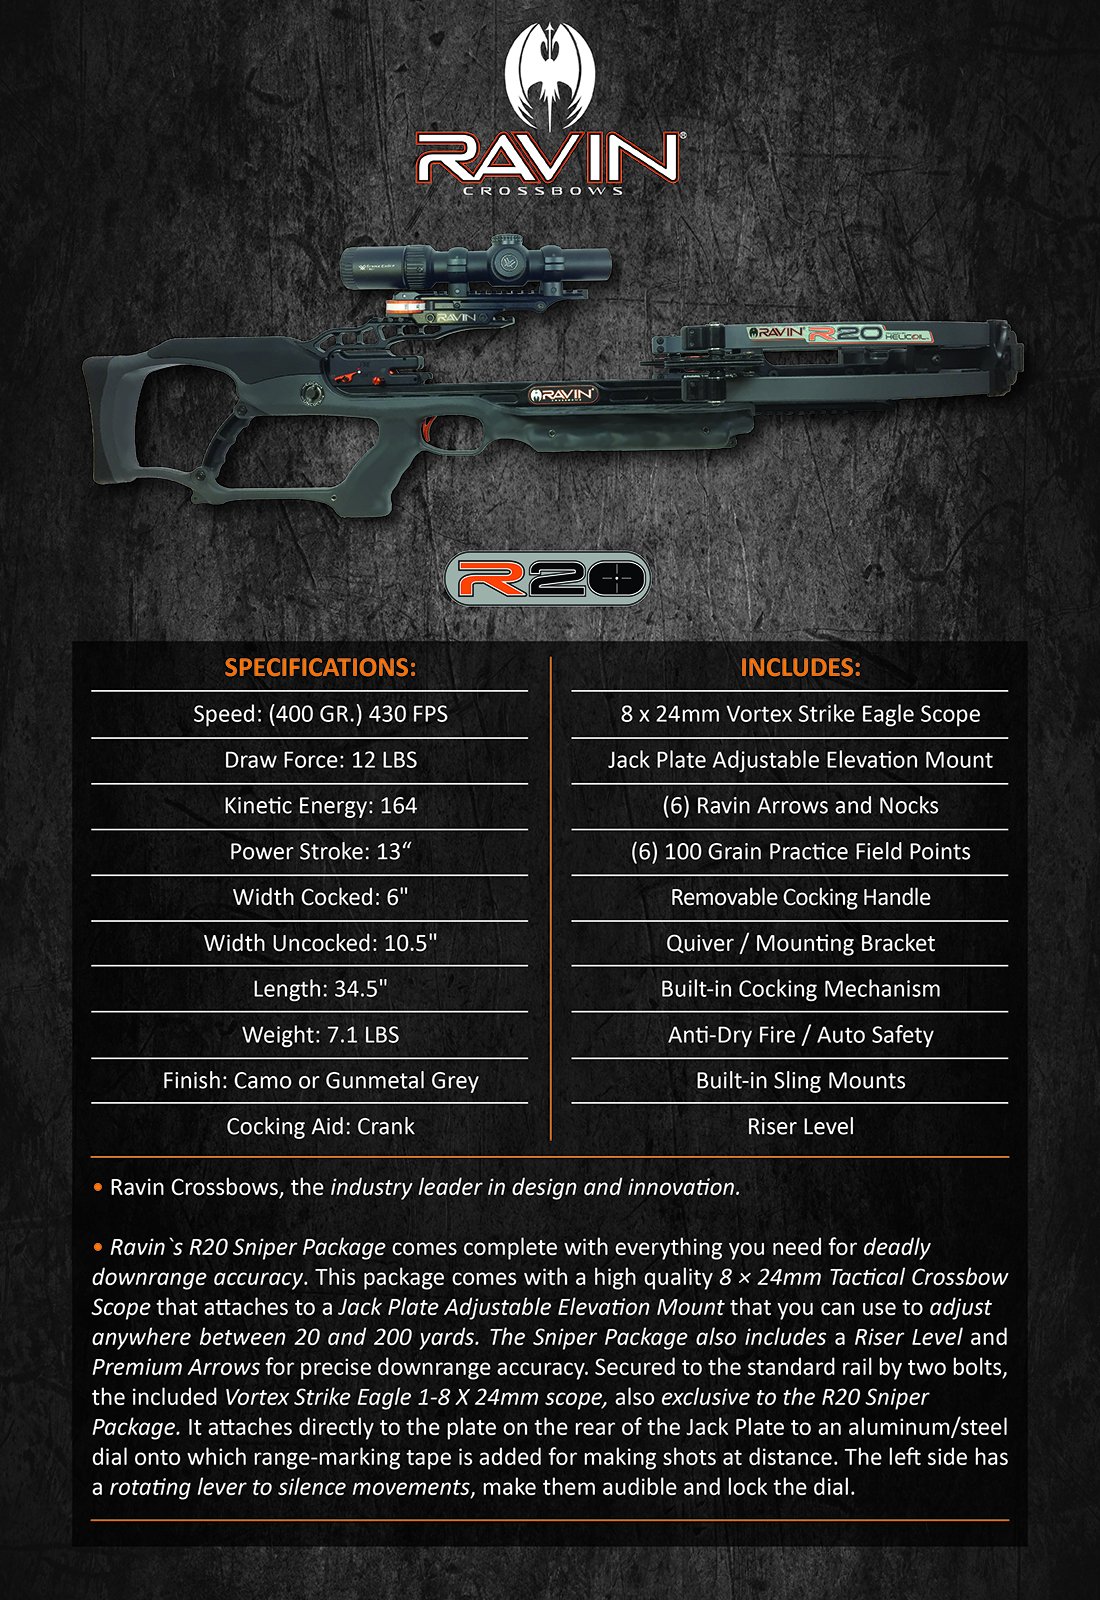 Ravin_Crossbow_R20_Sniper_Grey_Product_Description